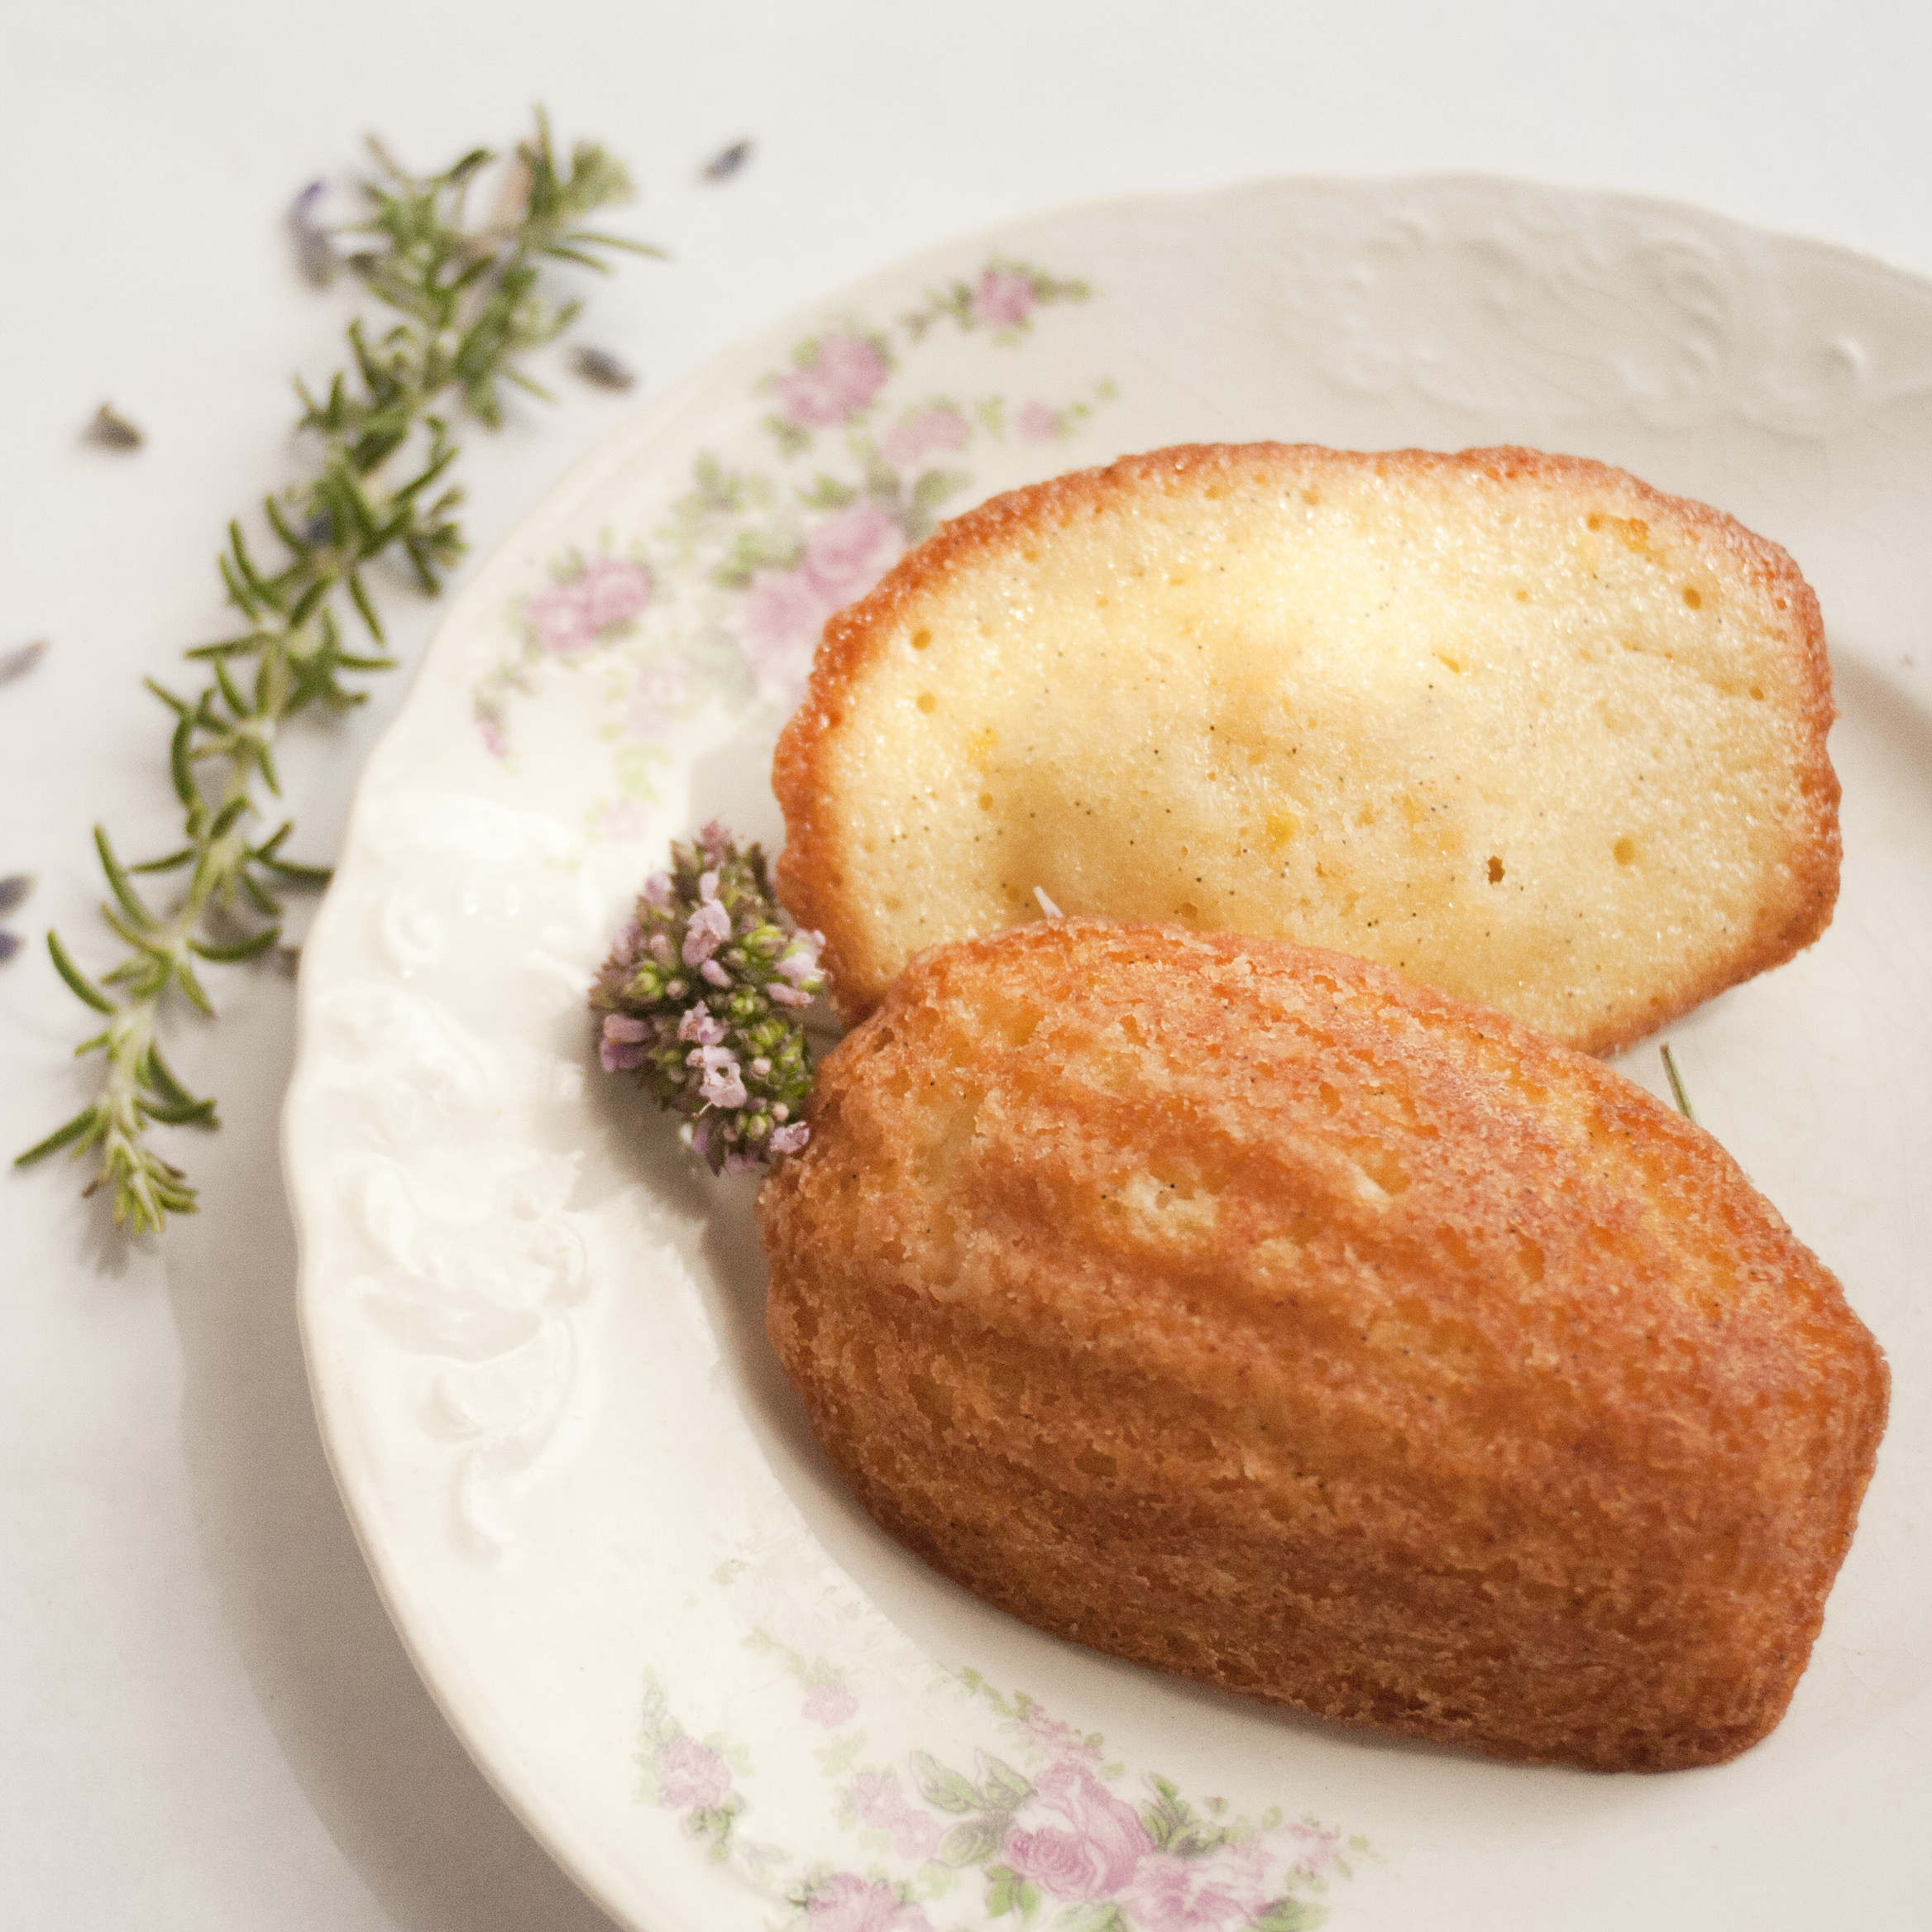 Vanilla Bean Madeleine : Freckled with a generous amount of vanilla ...